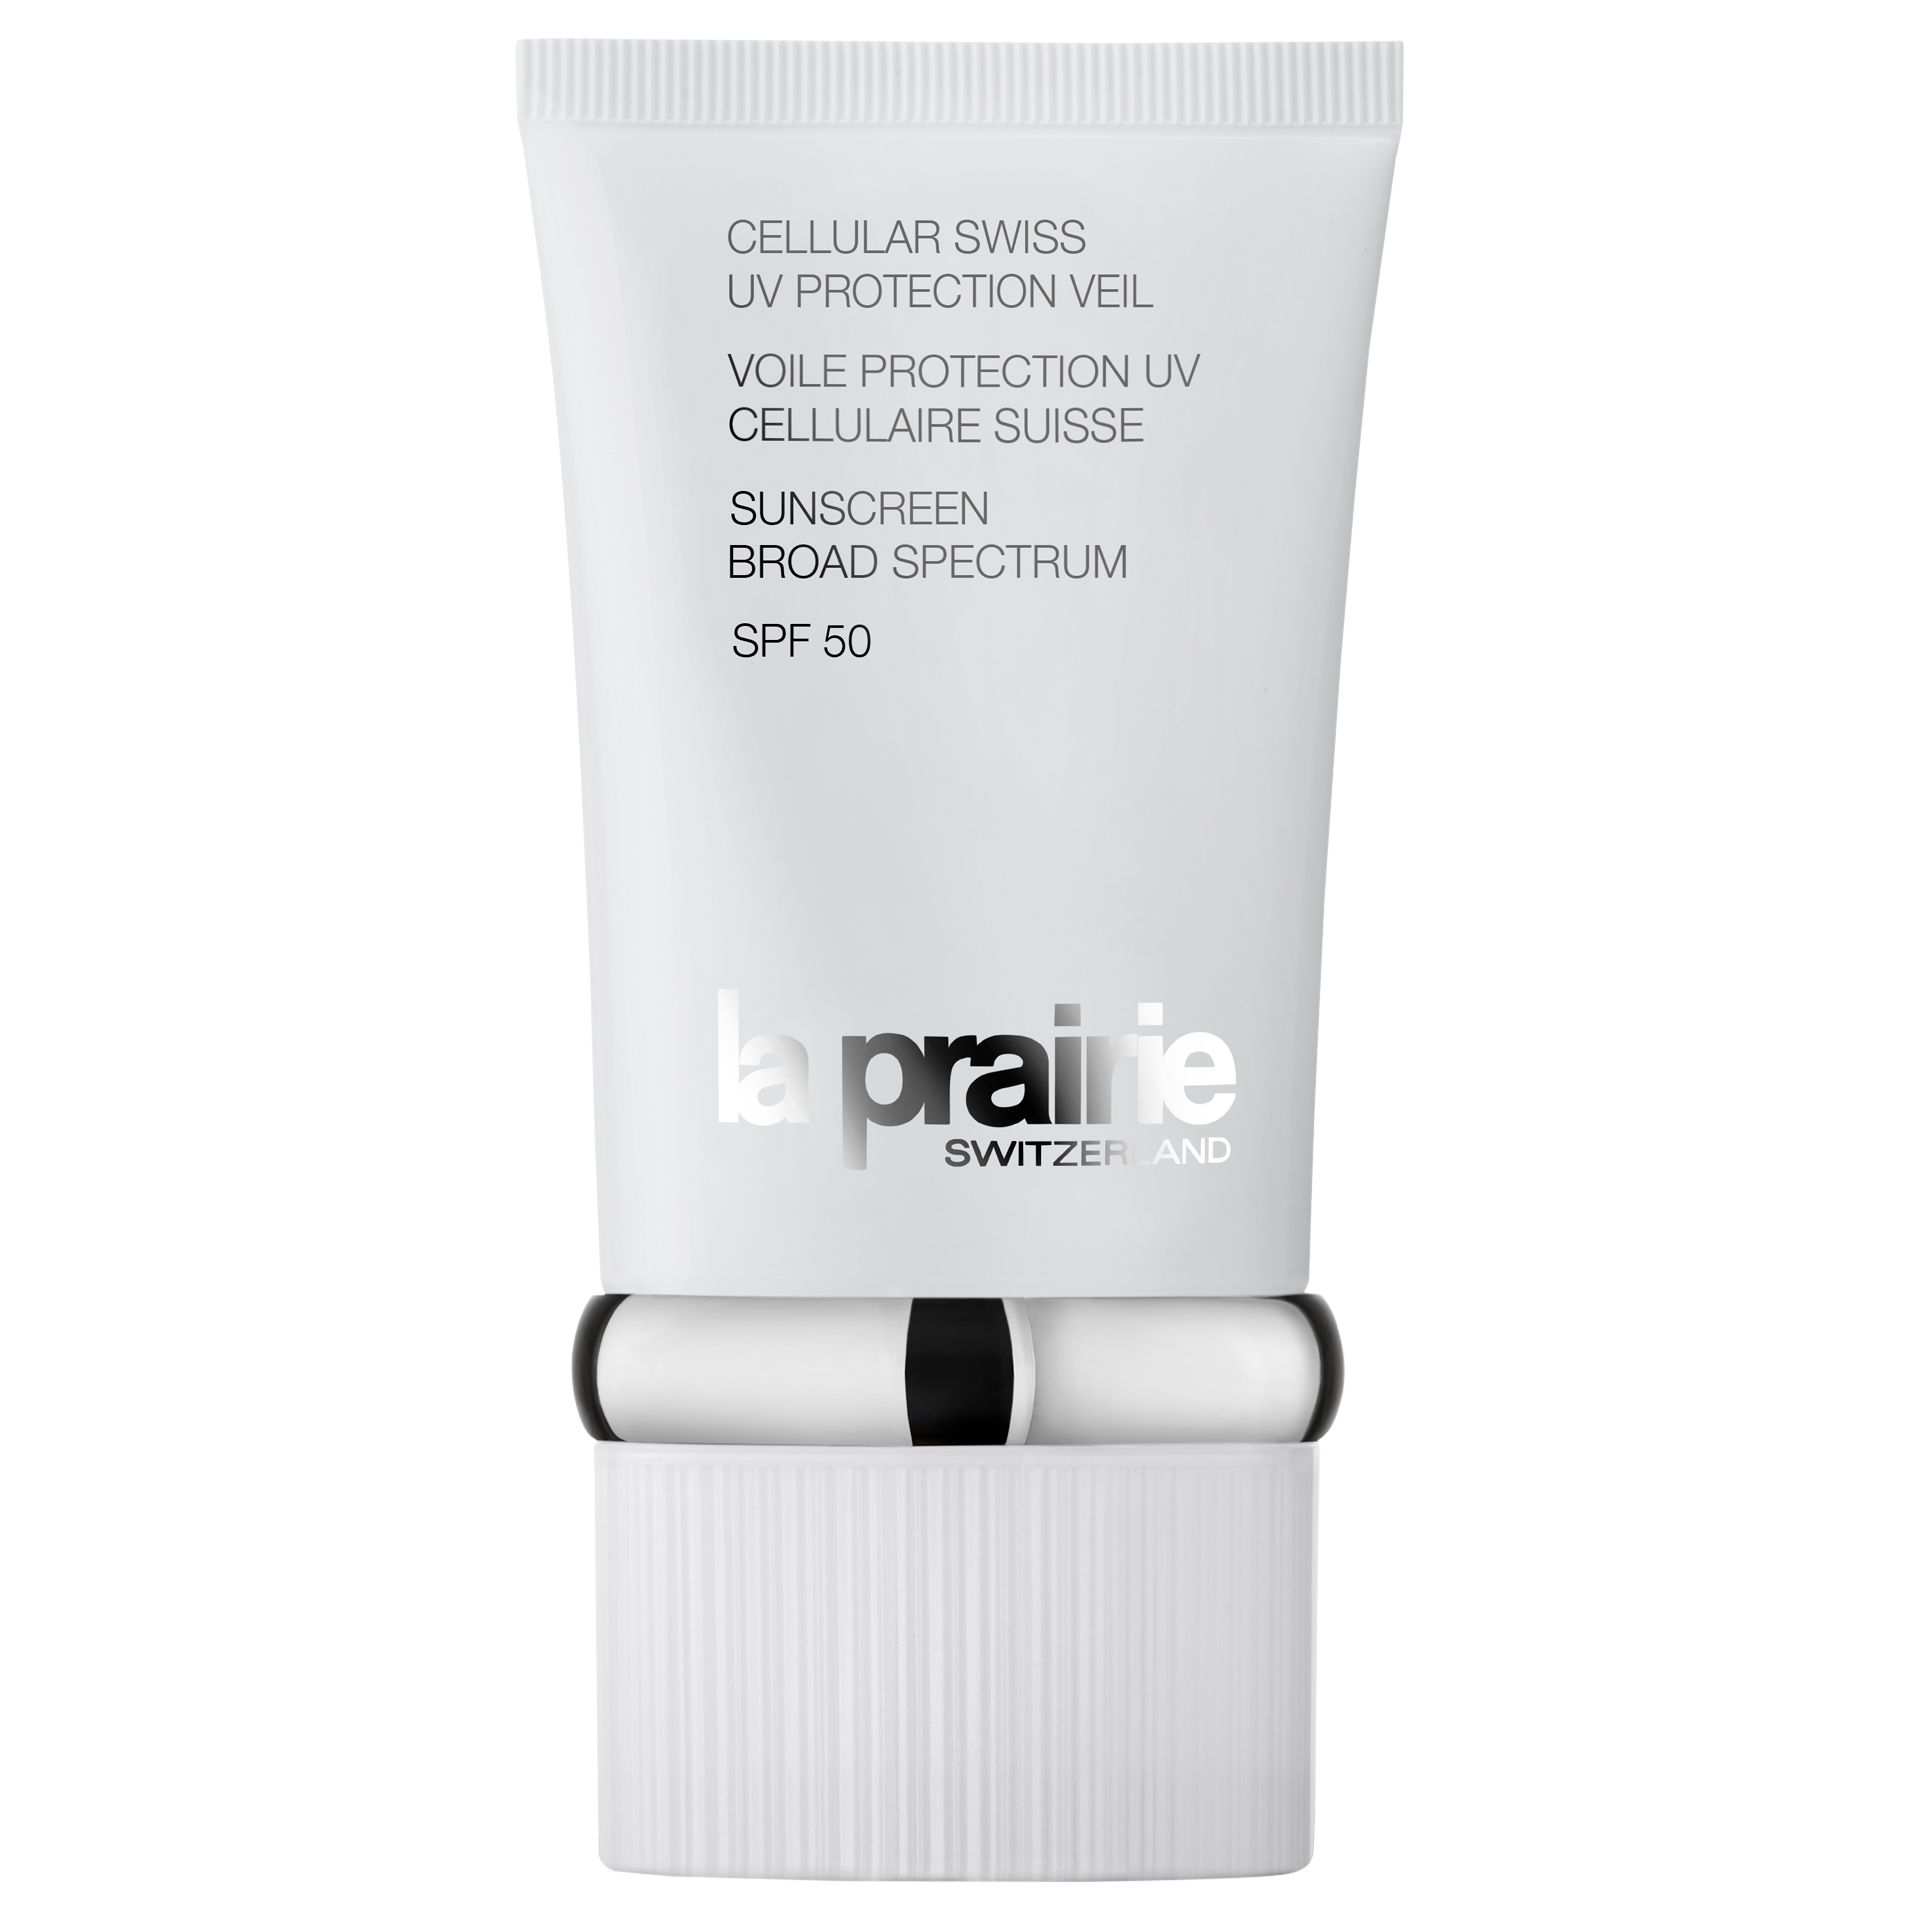 La Prairie La Prairie Cellular Swiss UV Protection Veil SPF 50, 50ml